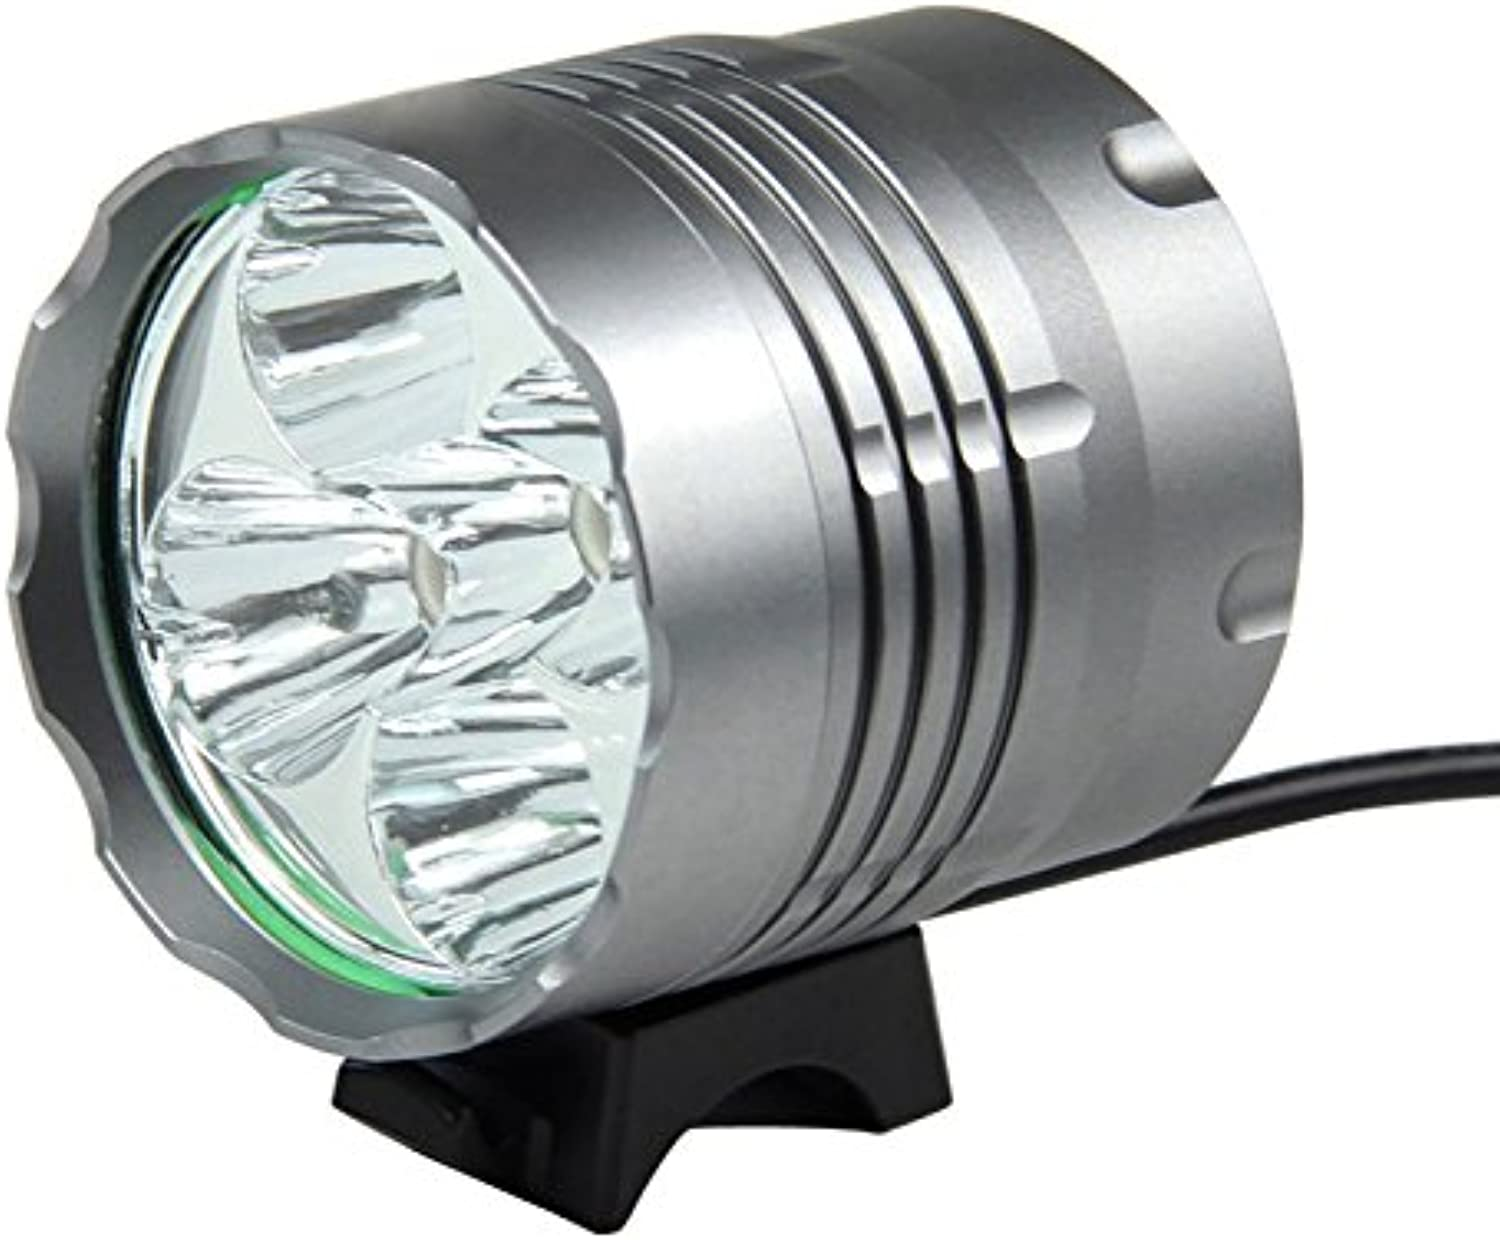 NACOLA Bike Front Light Ultra Bright 8000LM T6 LED Mountain Bicycle HeadLight